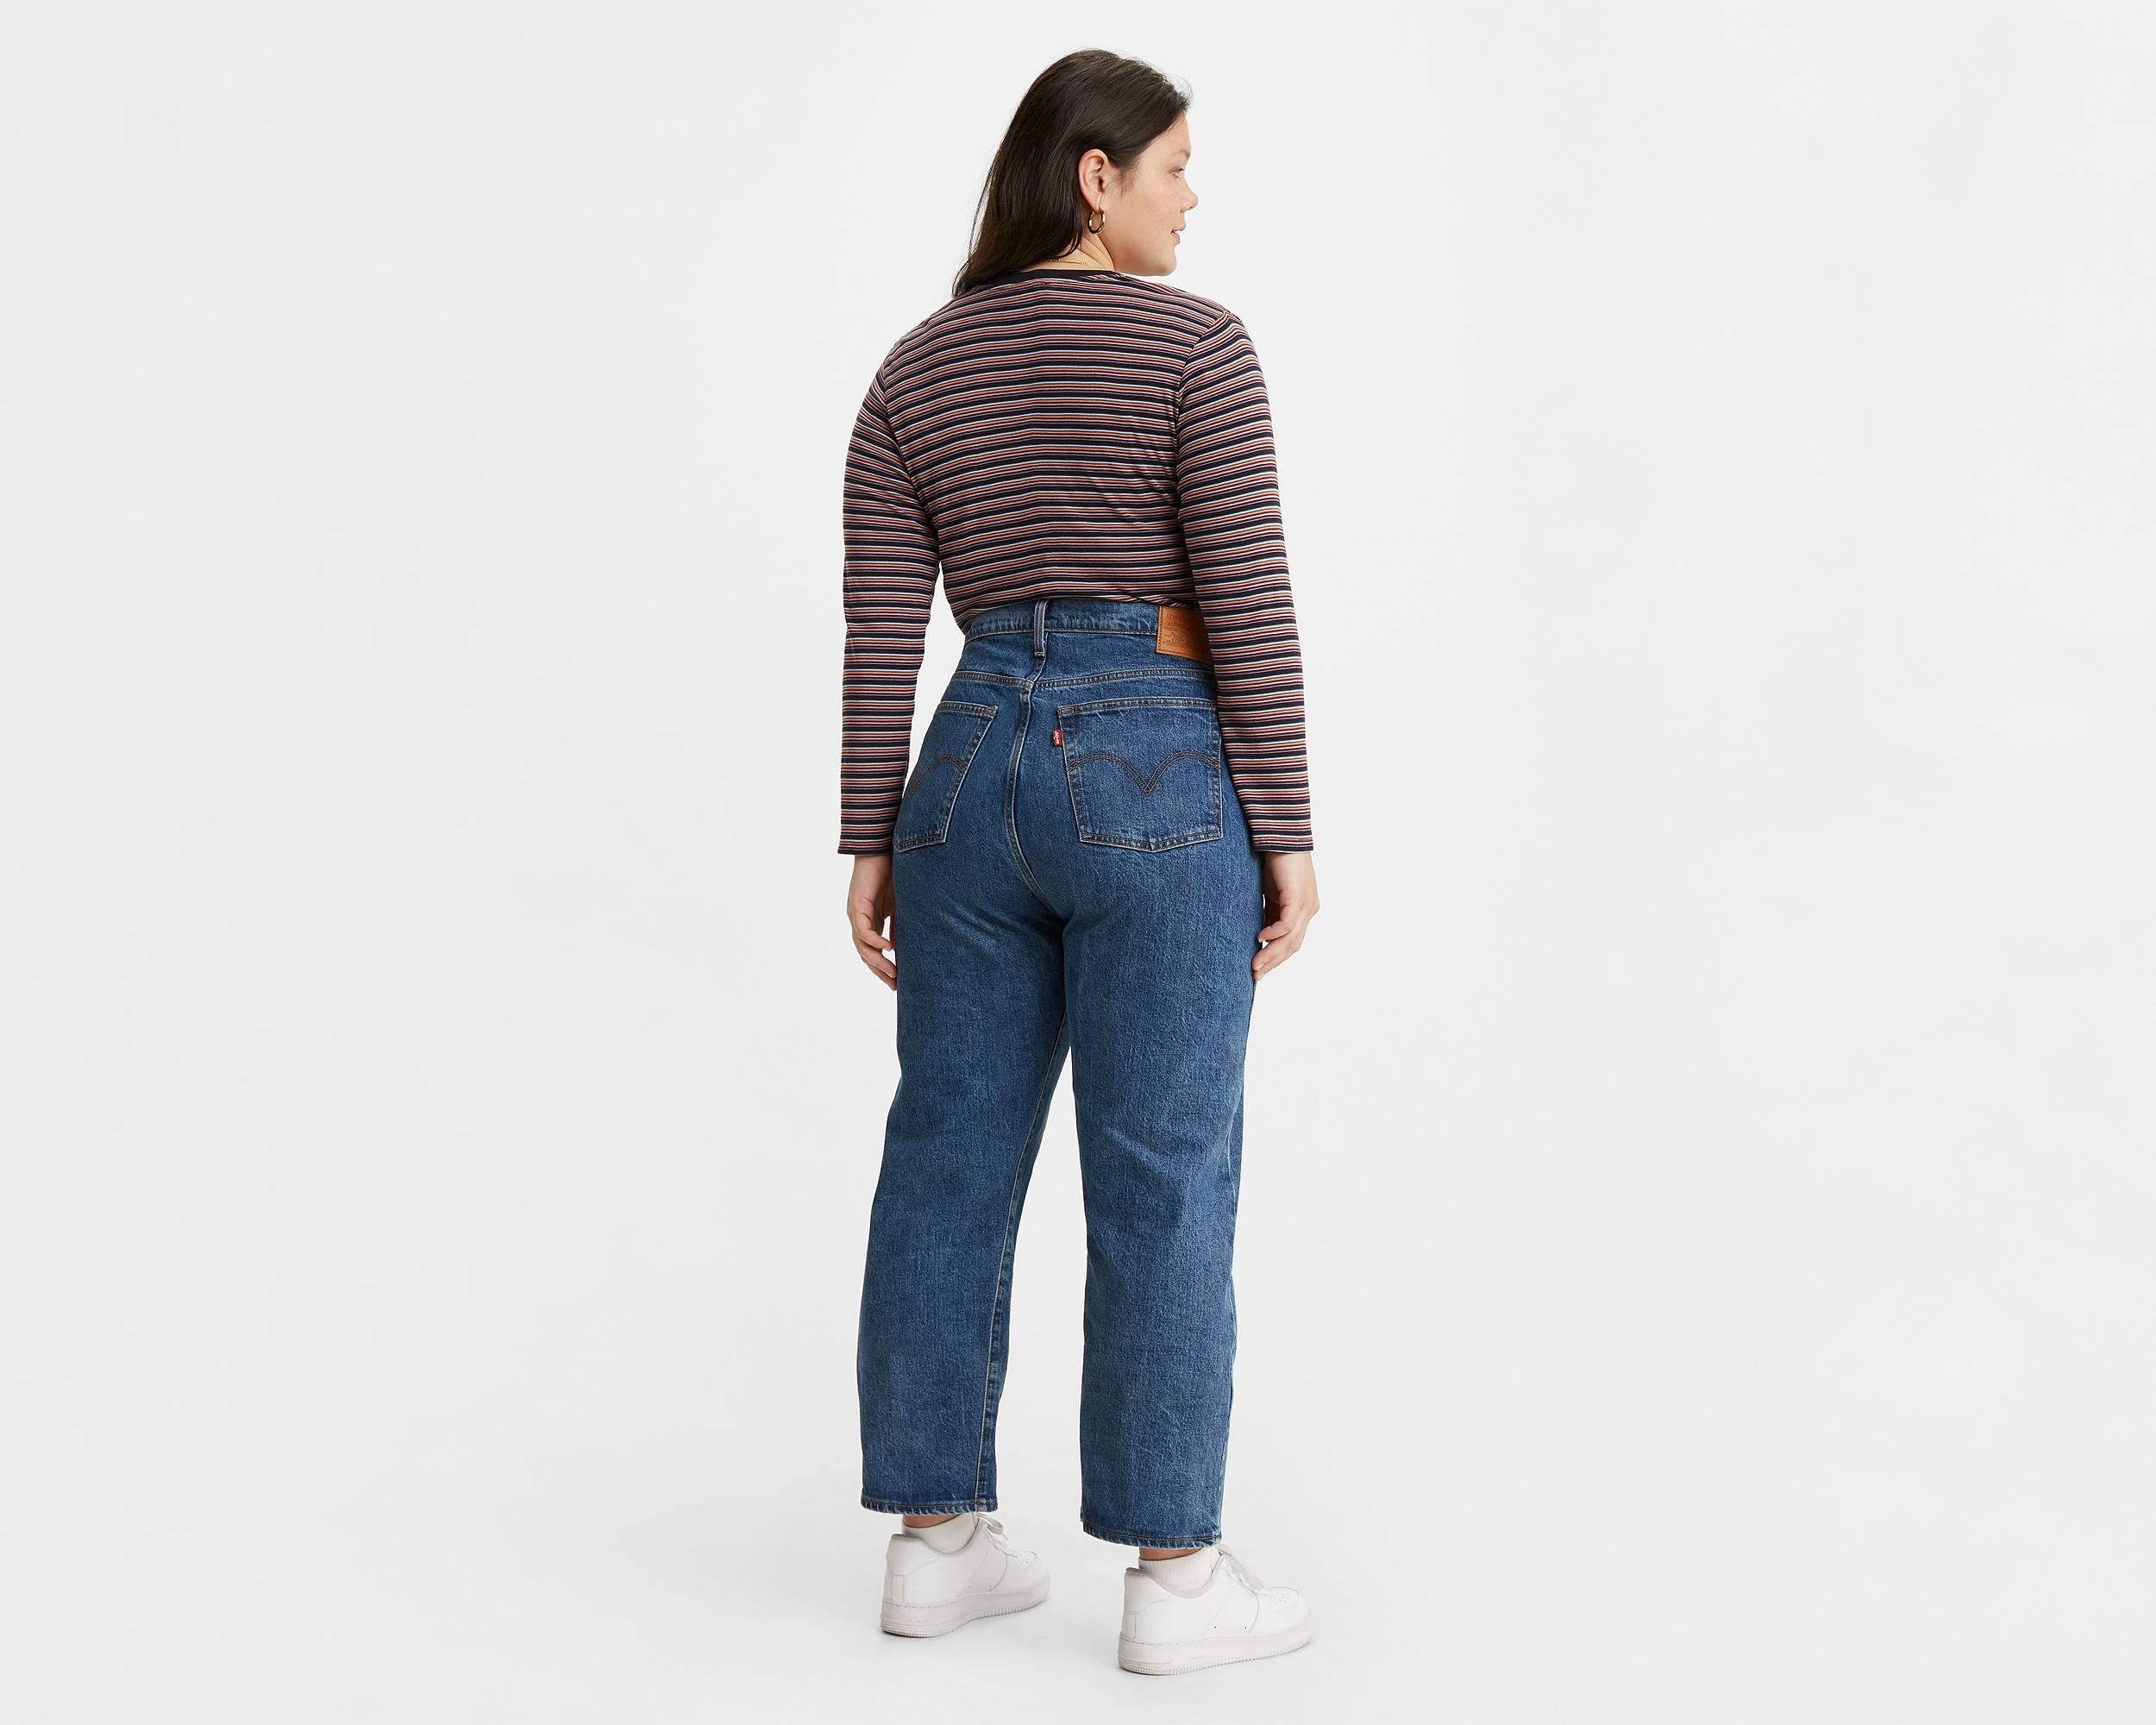 Ankle Jeans Definition